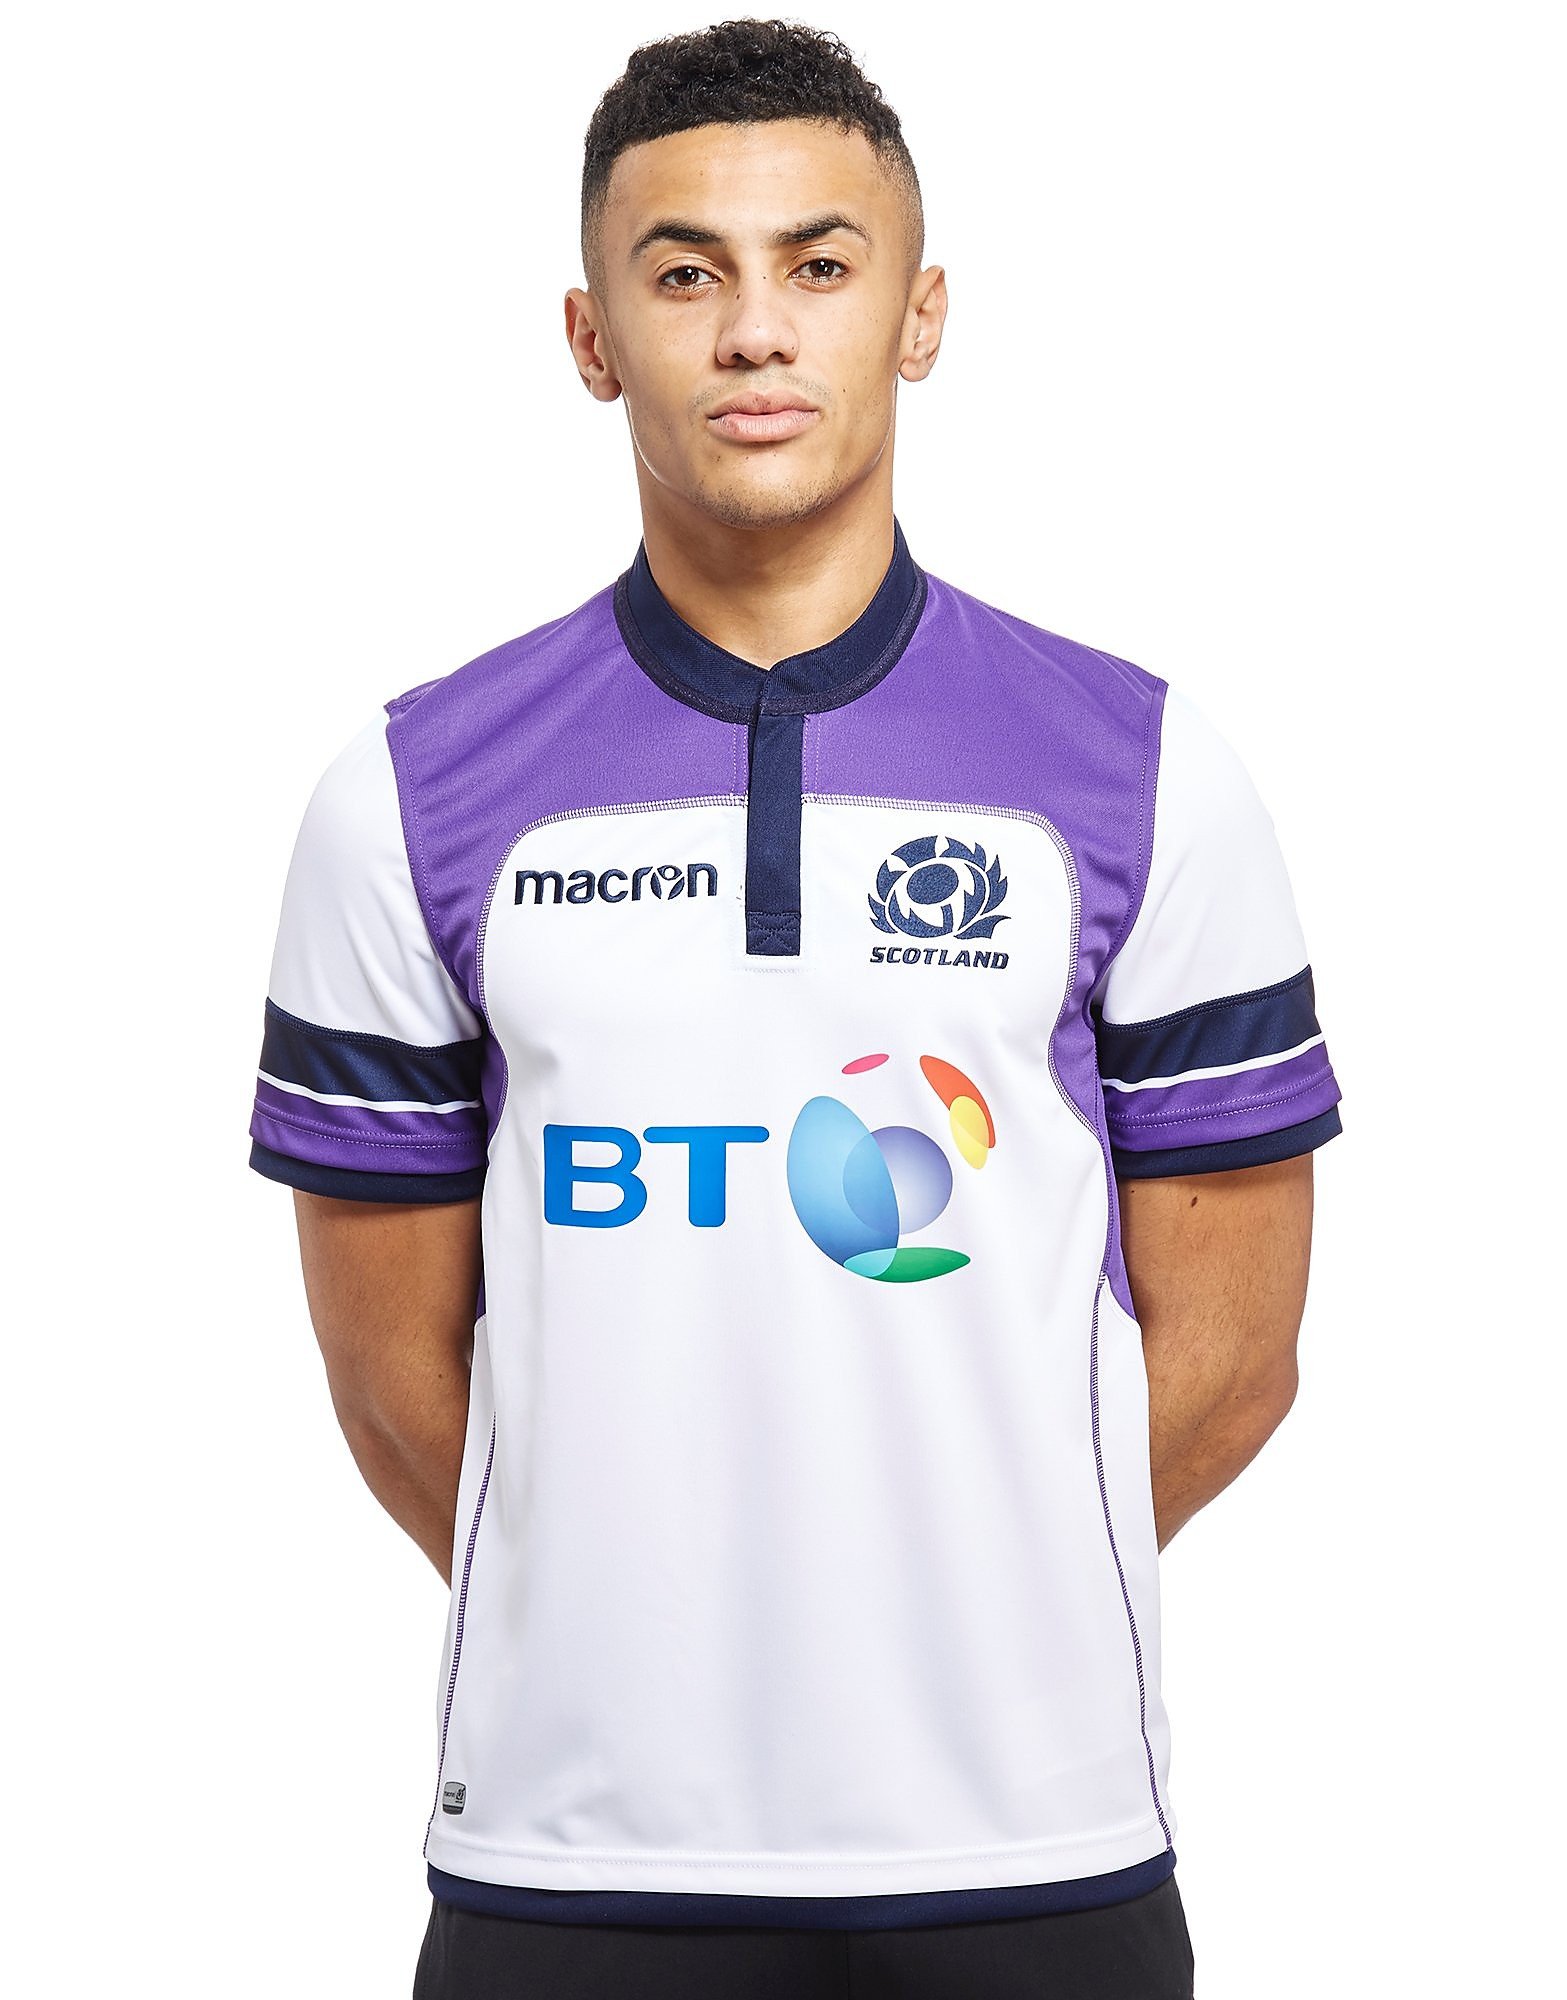 Macron Official Scotland Alternative Replica Jersey